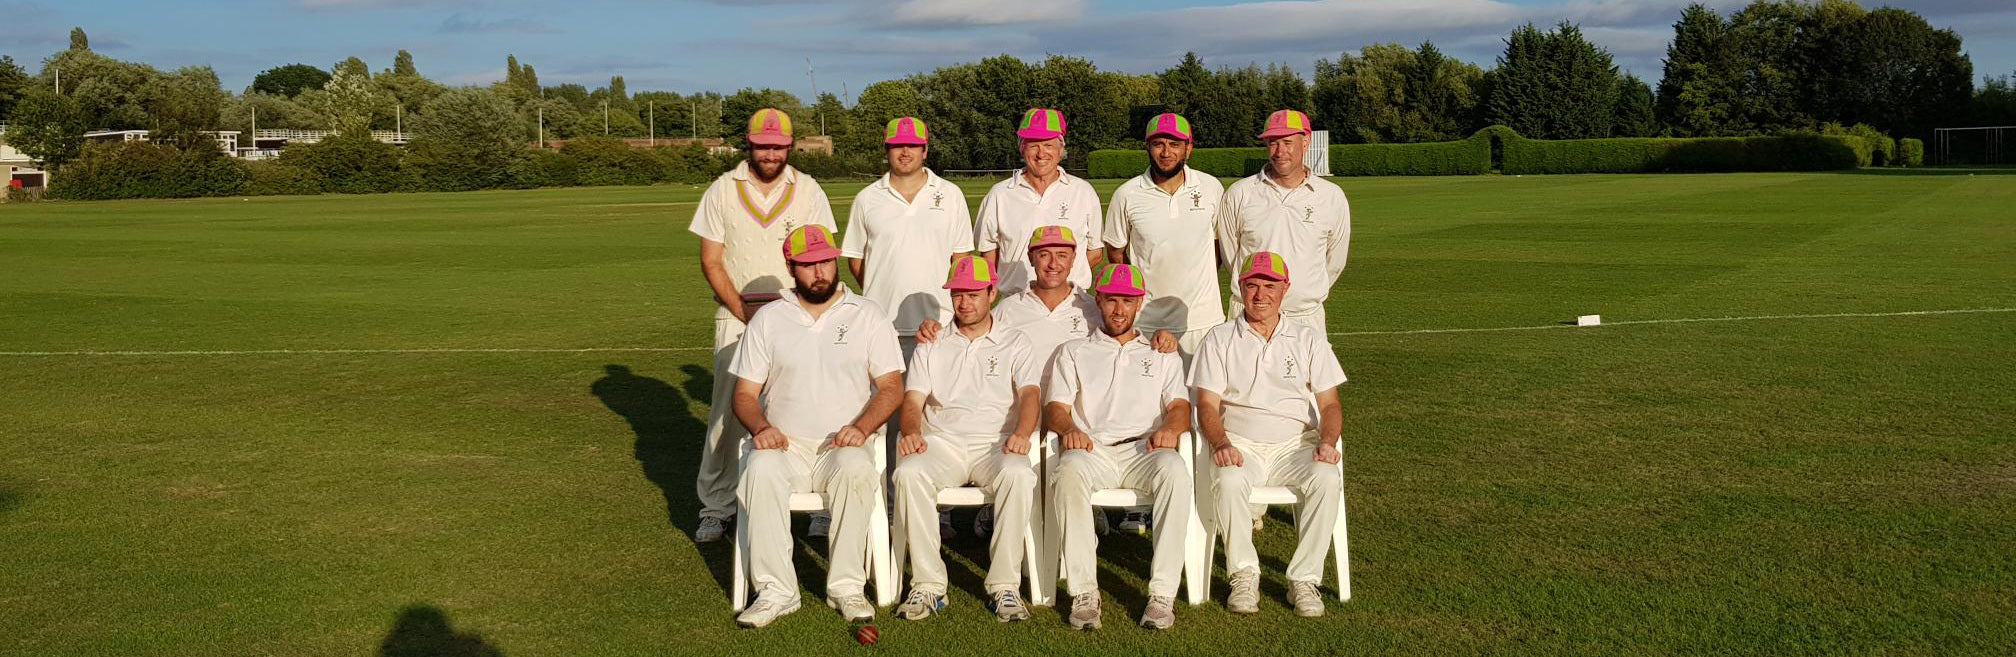 The Nepotists Cricket Club Team Photo At Oxford, 2018